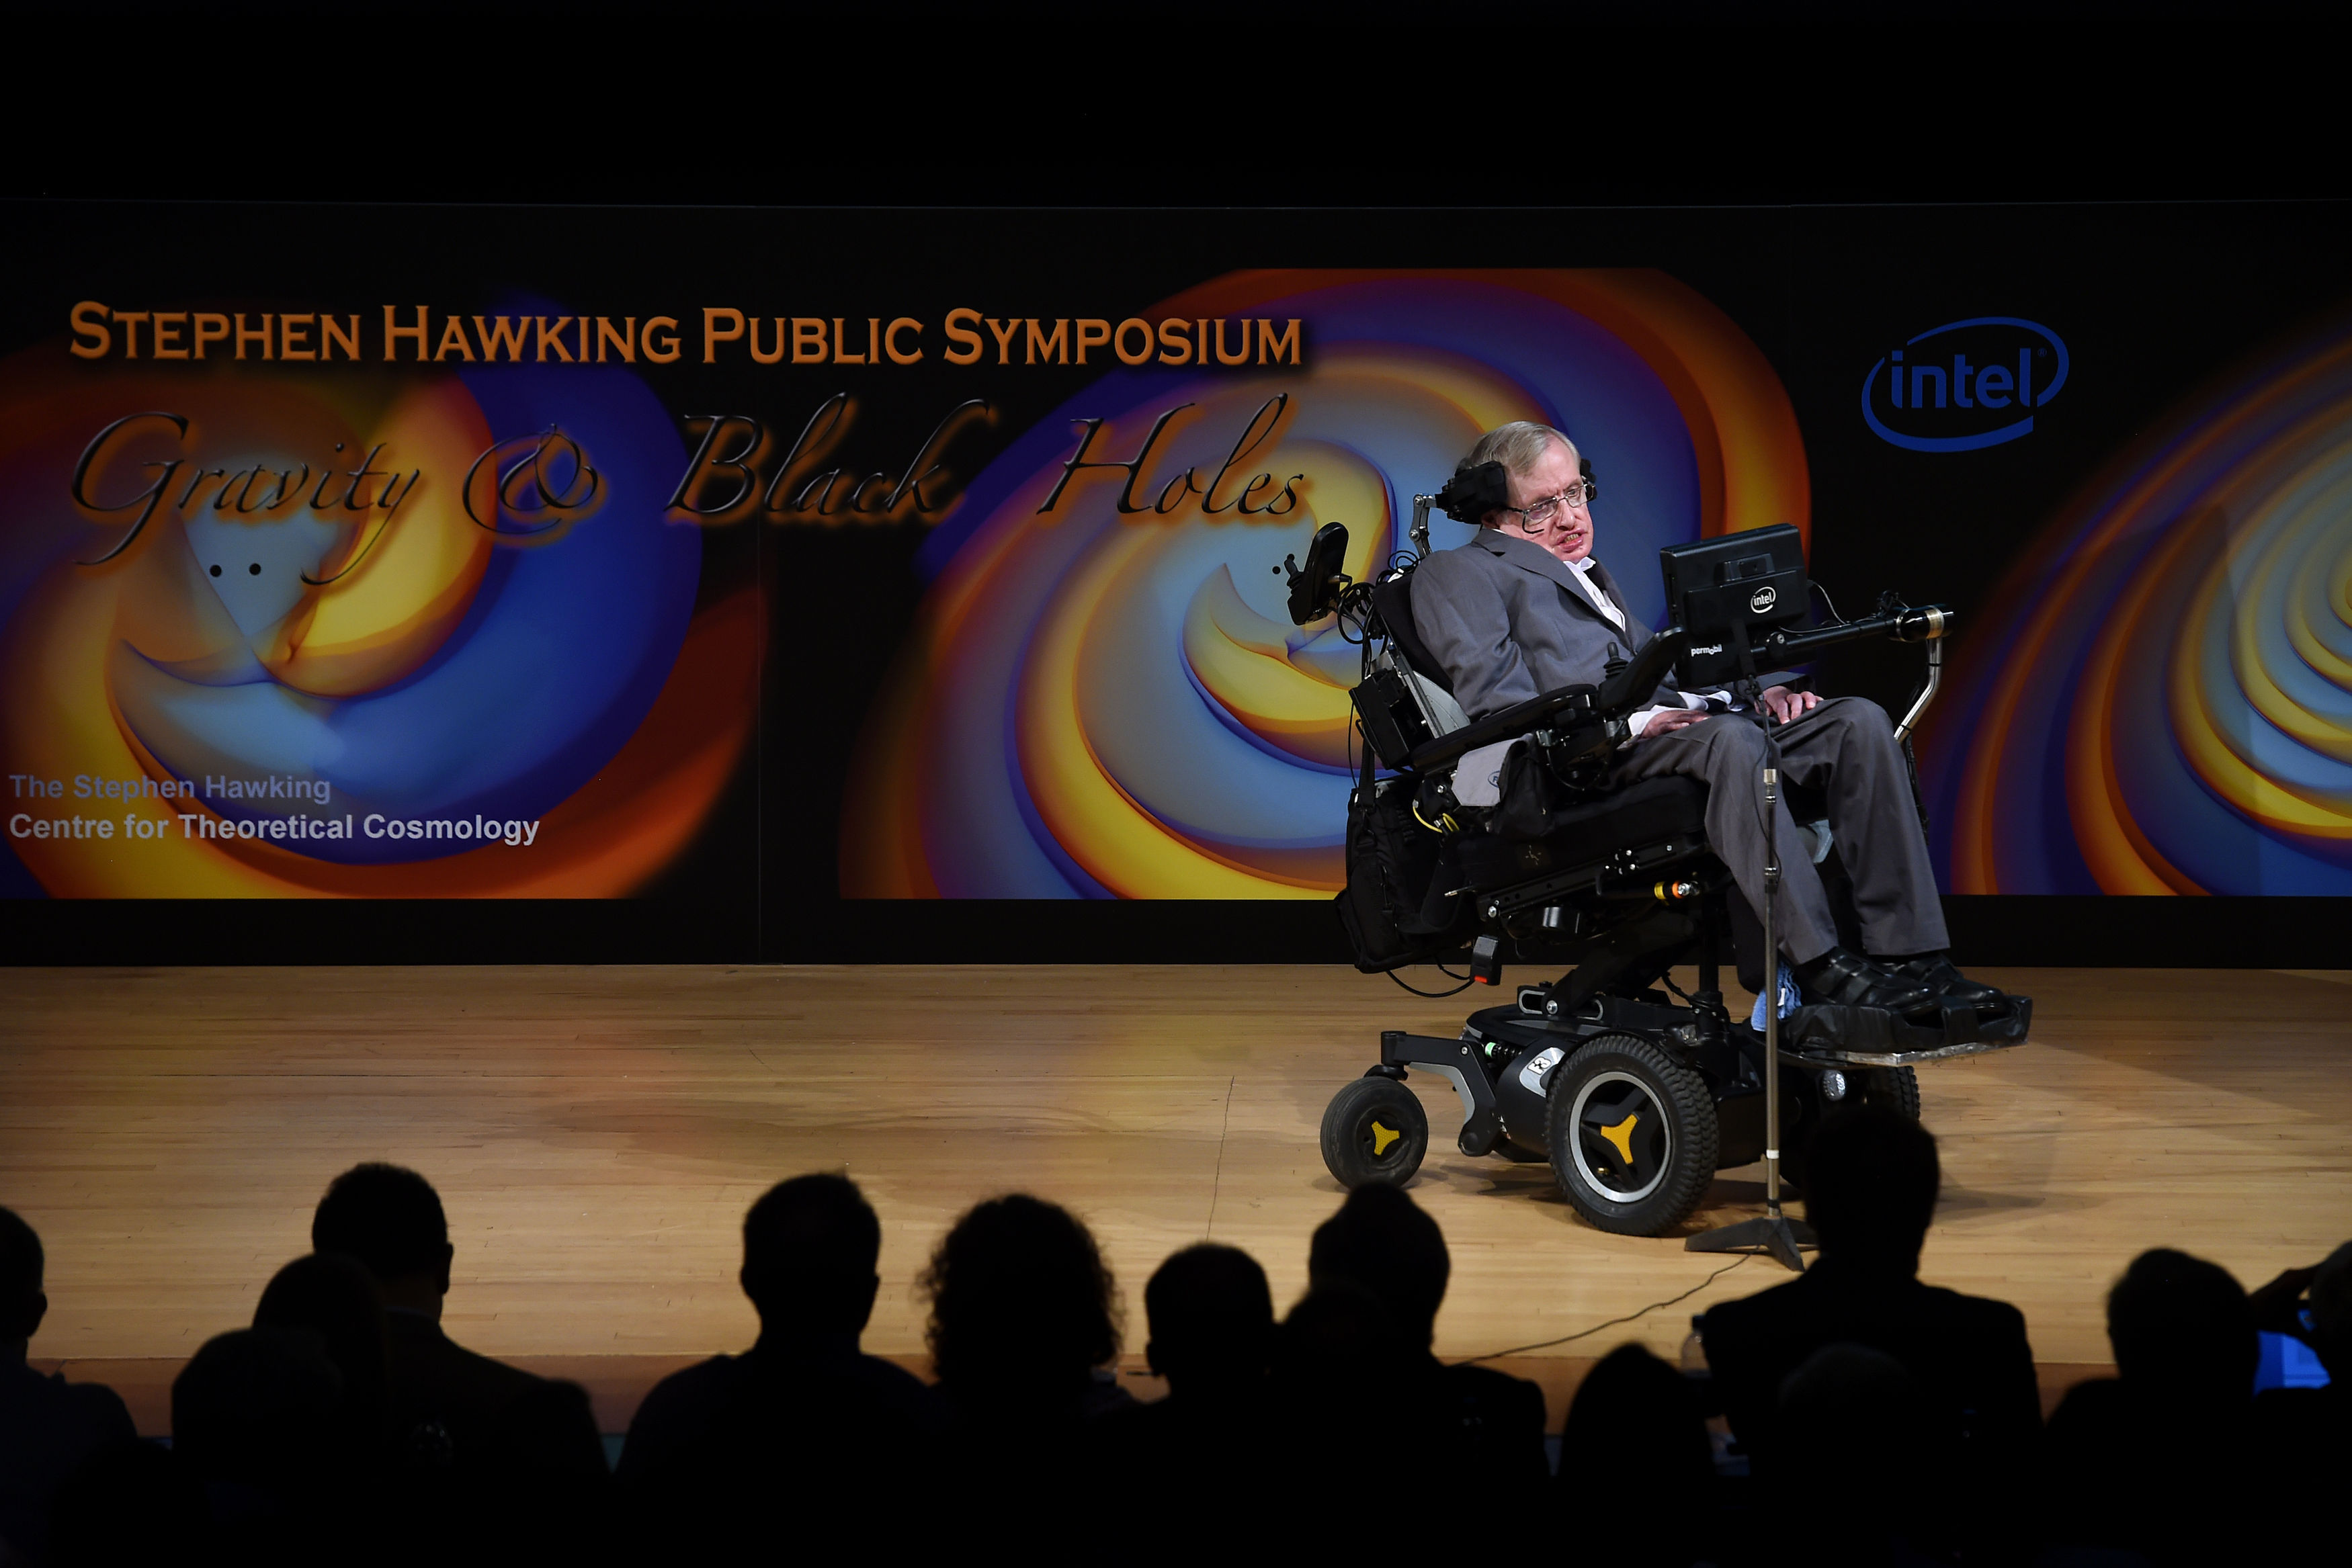 Professor Stephen Hawking giving a talk in 2016. Credit: PA